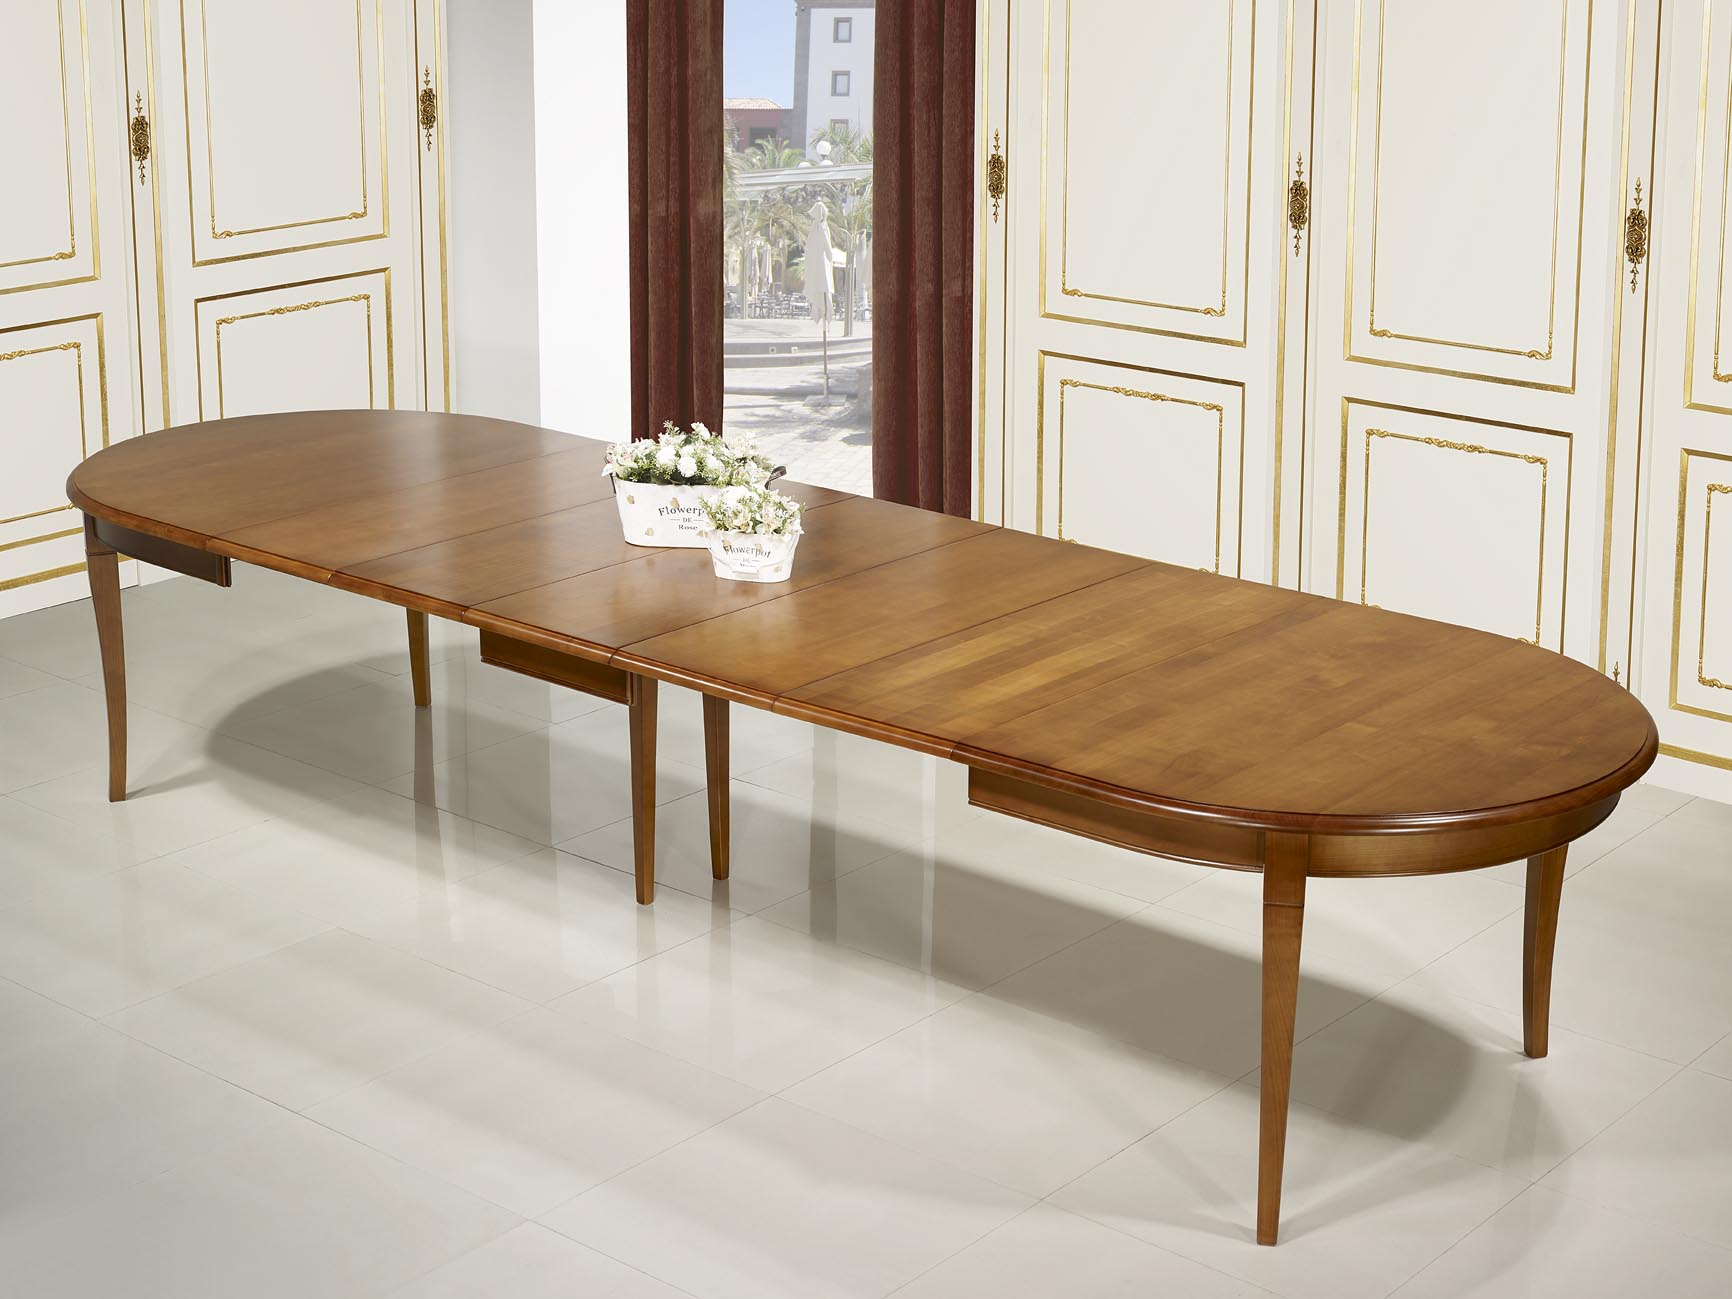 Table ovale julie 180 120 en merisier massif de style for Table extensible 120 240 cm allonge integree